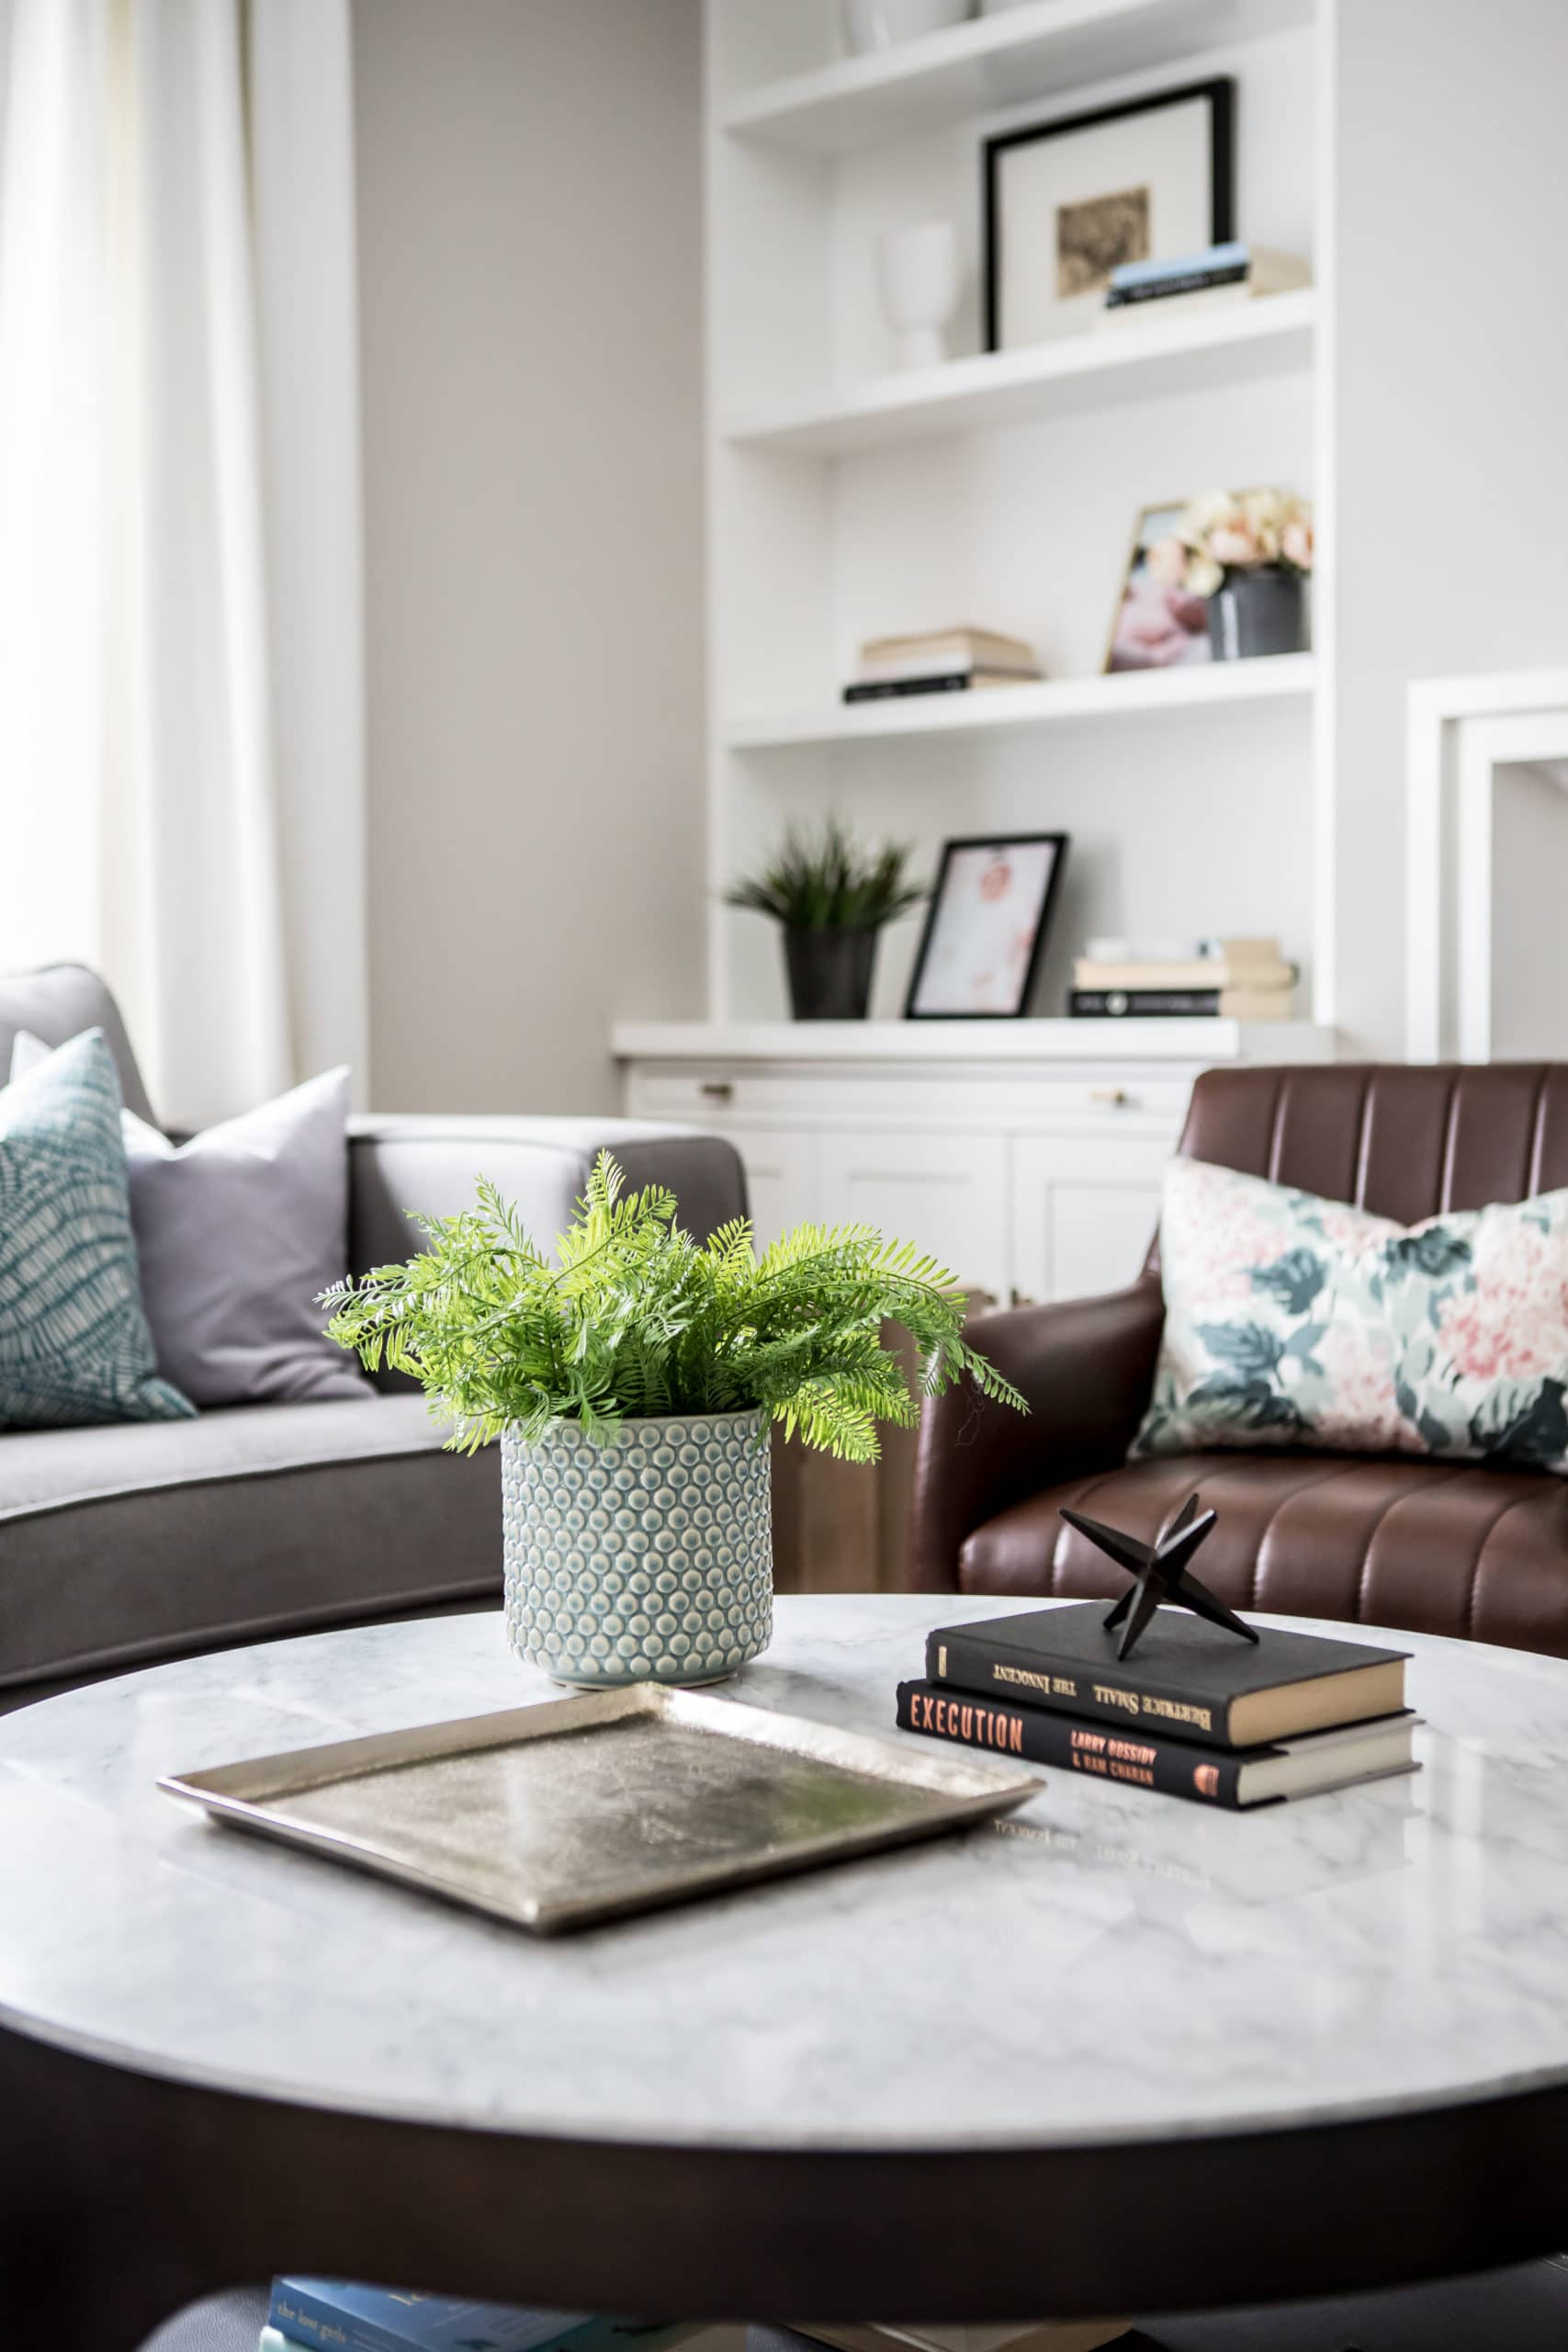 Round table with a potted plant on it in a living room